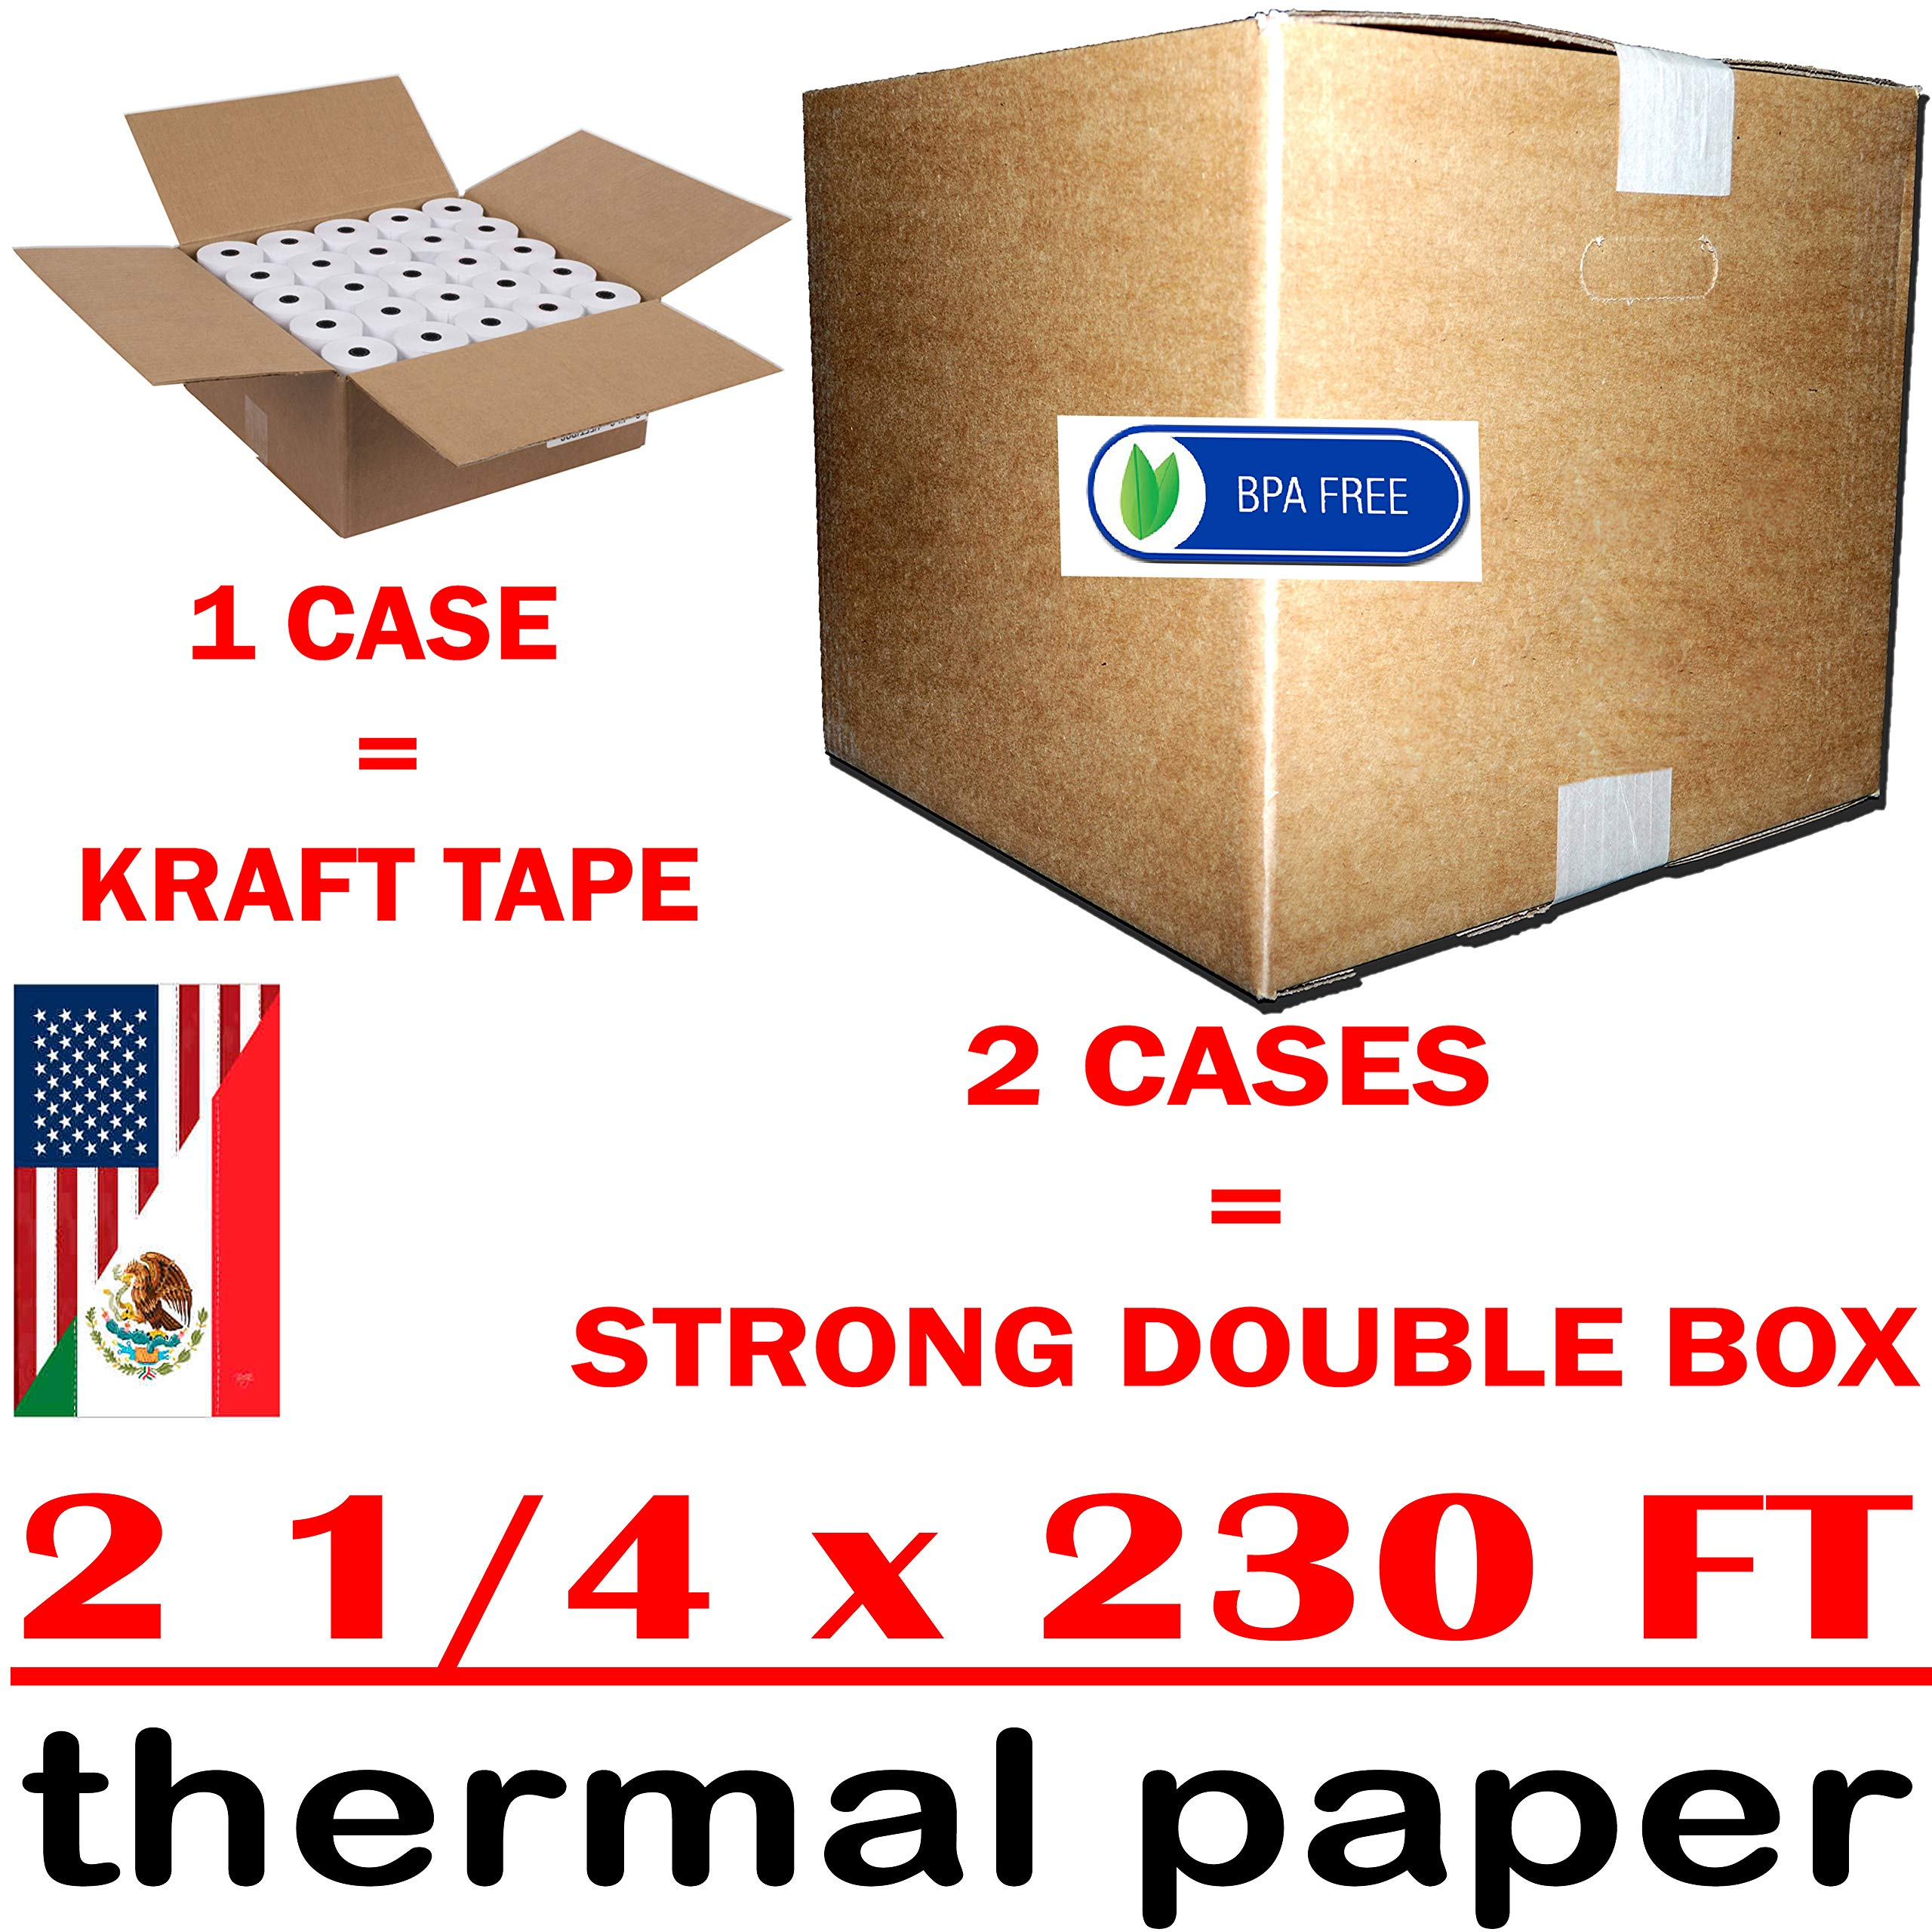 ✅ 2-1/4 x 230' 1-ply thermal paper 50 rolls bpa free cash register tape - Eco Friendly Value Pack from RegisterRoll | Premium Quality Thermal Paper by RegisterRoll